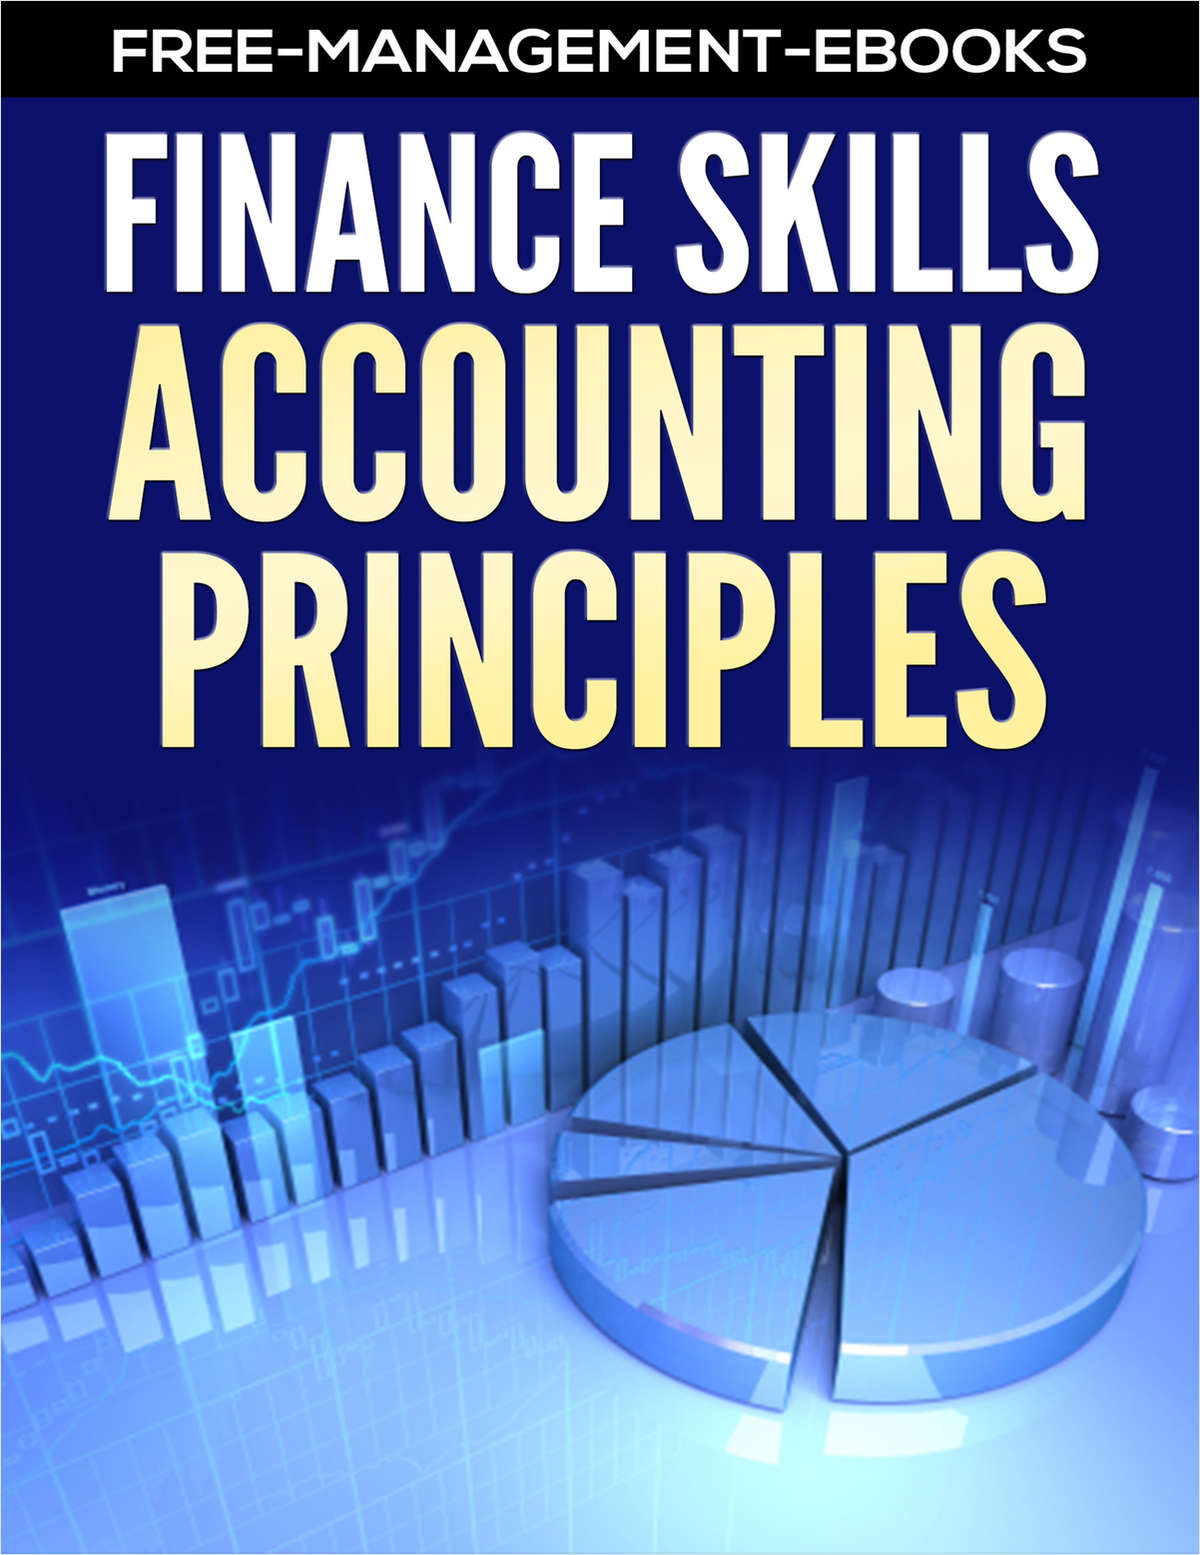 Accounting Principles - Developing Your Finance Skills